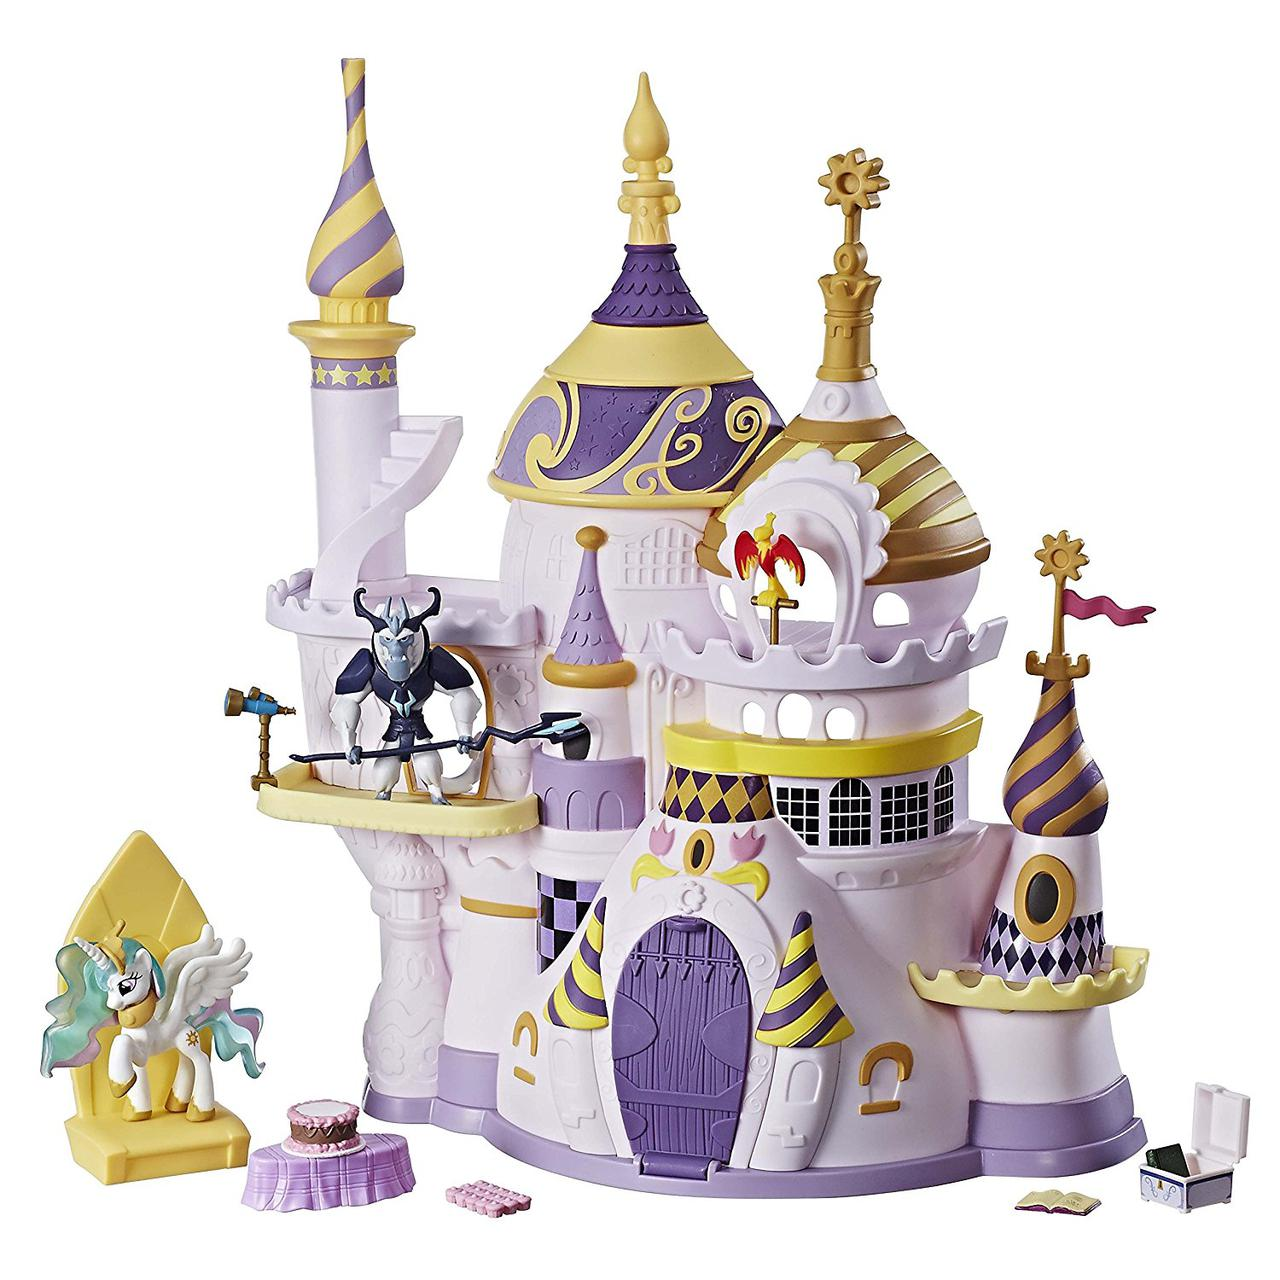 Май Литл Пони Замок Кантерлот My Little Pony Friendship is Magic Collection Canterlot Castle